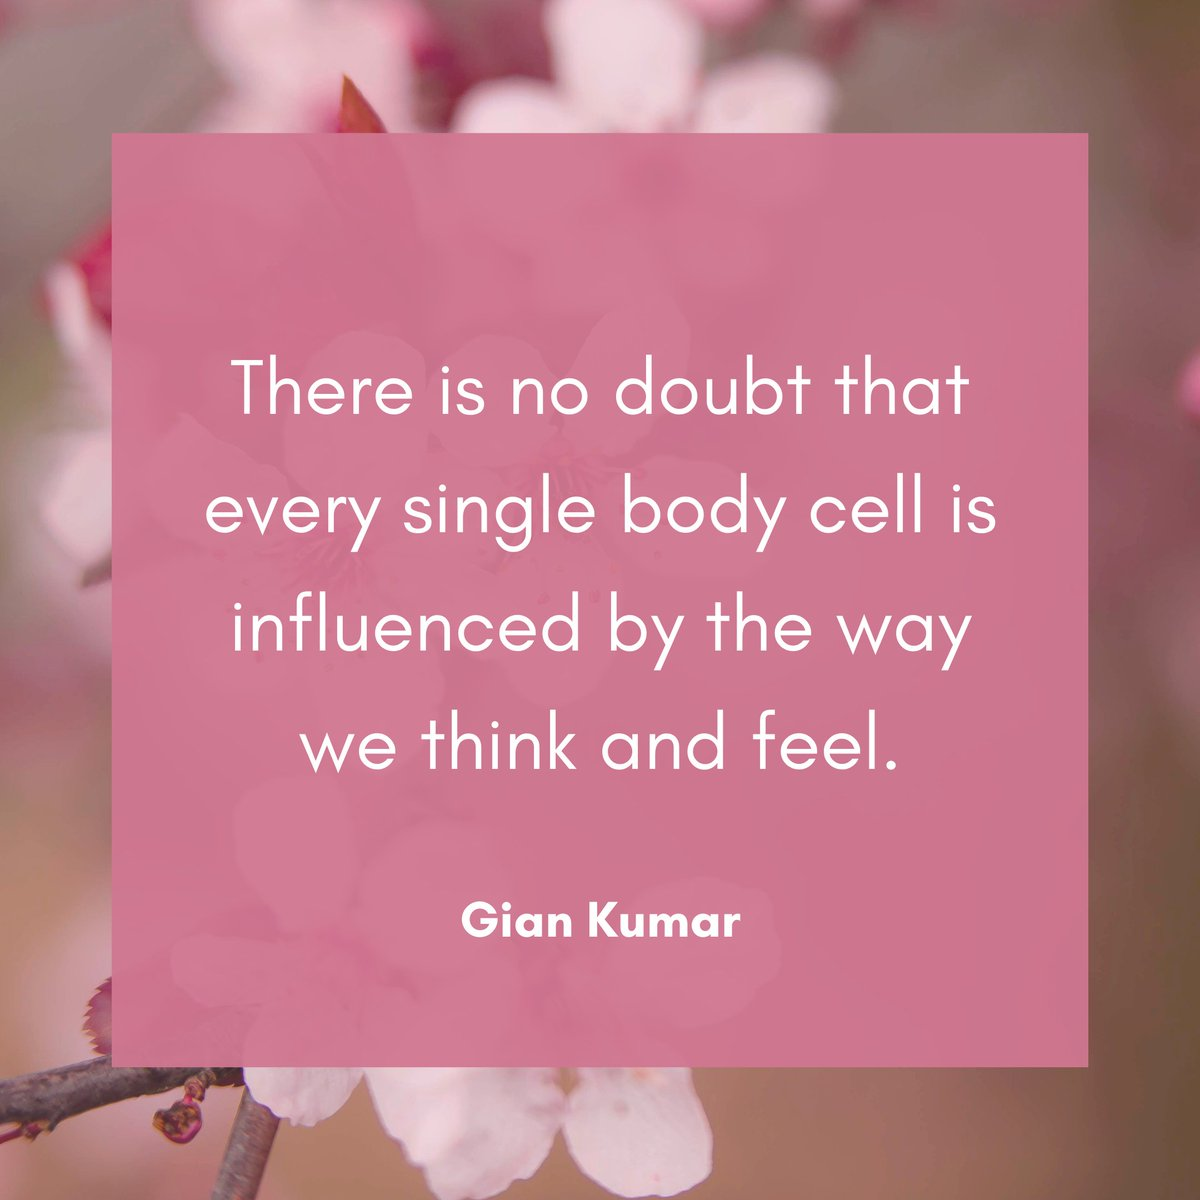 There is no doubt that every single body cell is influenced by the way we think and feel. . . . . . . #giankumar #spiritualauthor #spiritualist #spiritualpower #mustread #mindfulness #mindfulnessmatters #ego #mind #balance #harmony #discipline #hayhouse #hayhouseindia #controlpic.twitter.com/FPibhDC88B